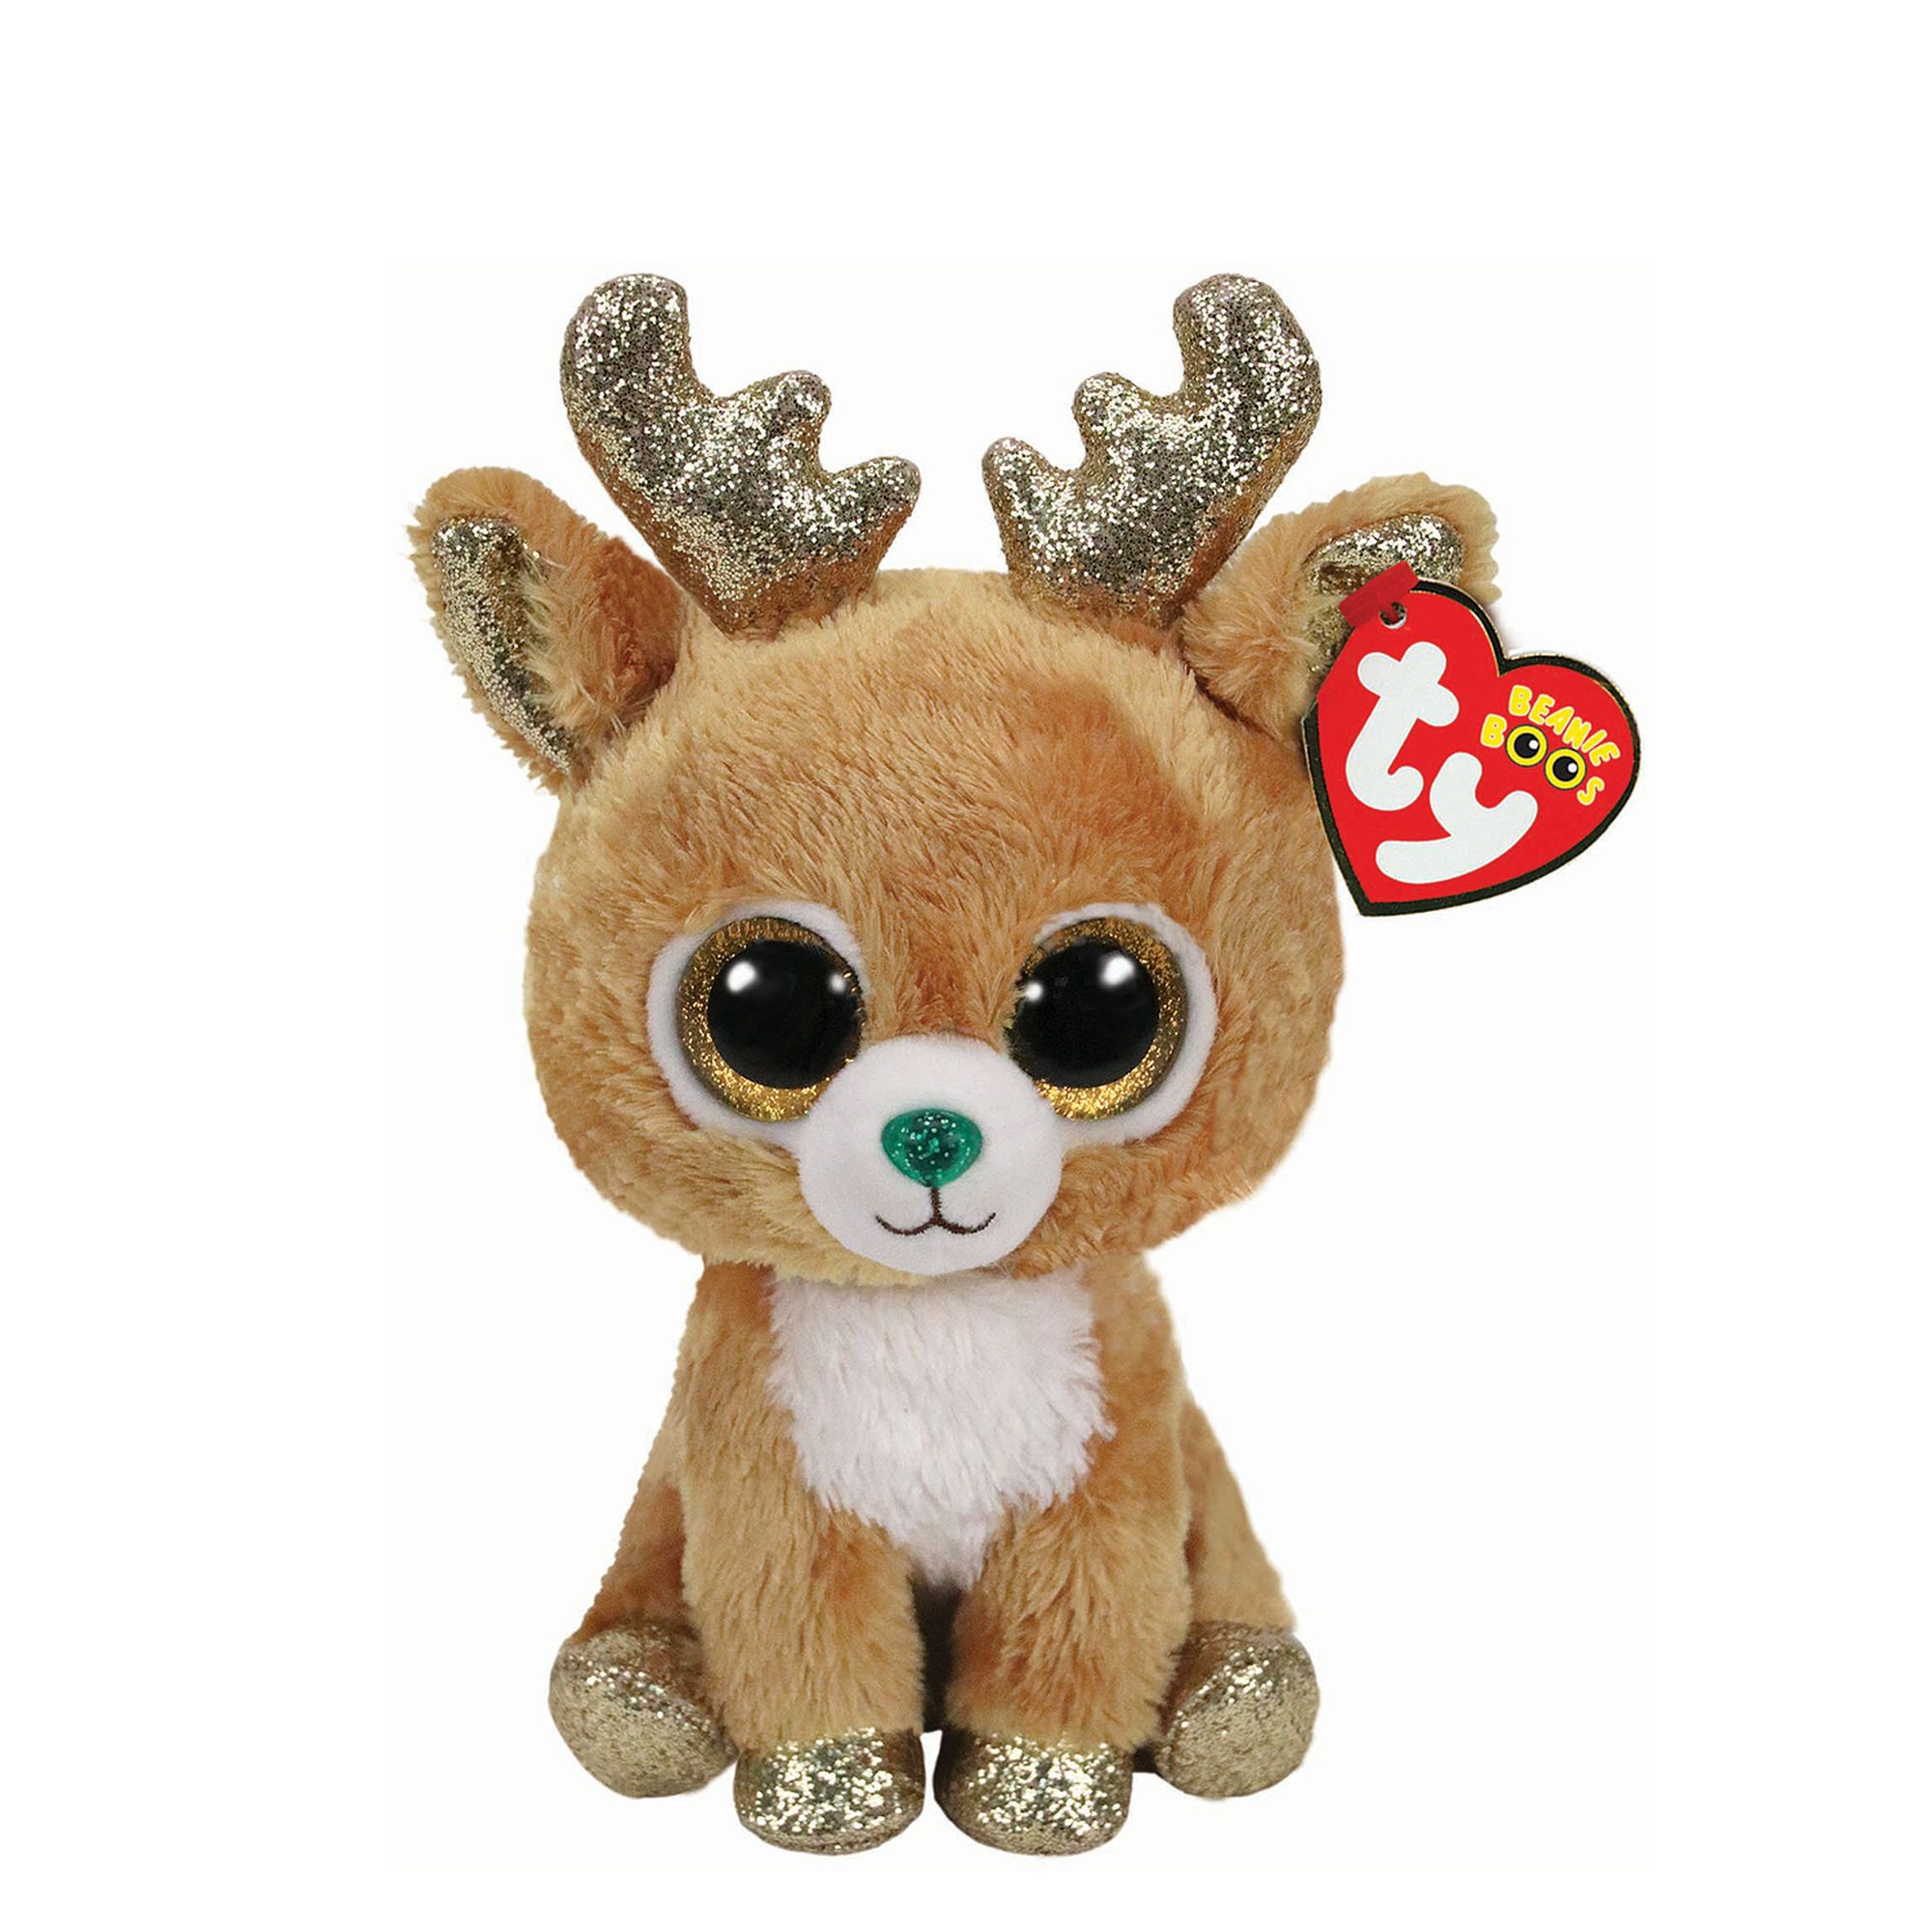 Ty Beanie Boo Small Glitzy the Reindeer Plush Toy Claire